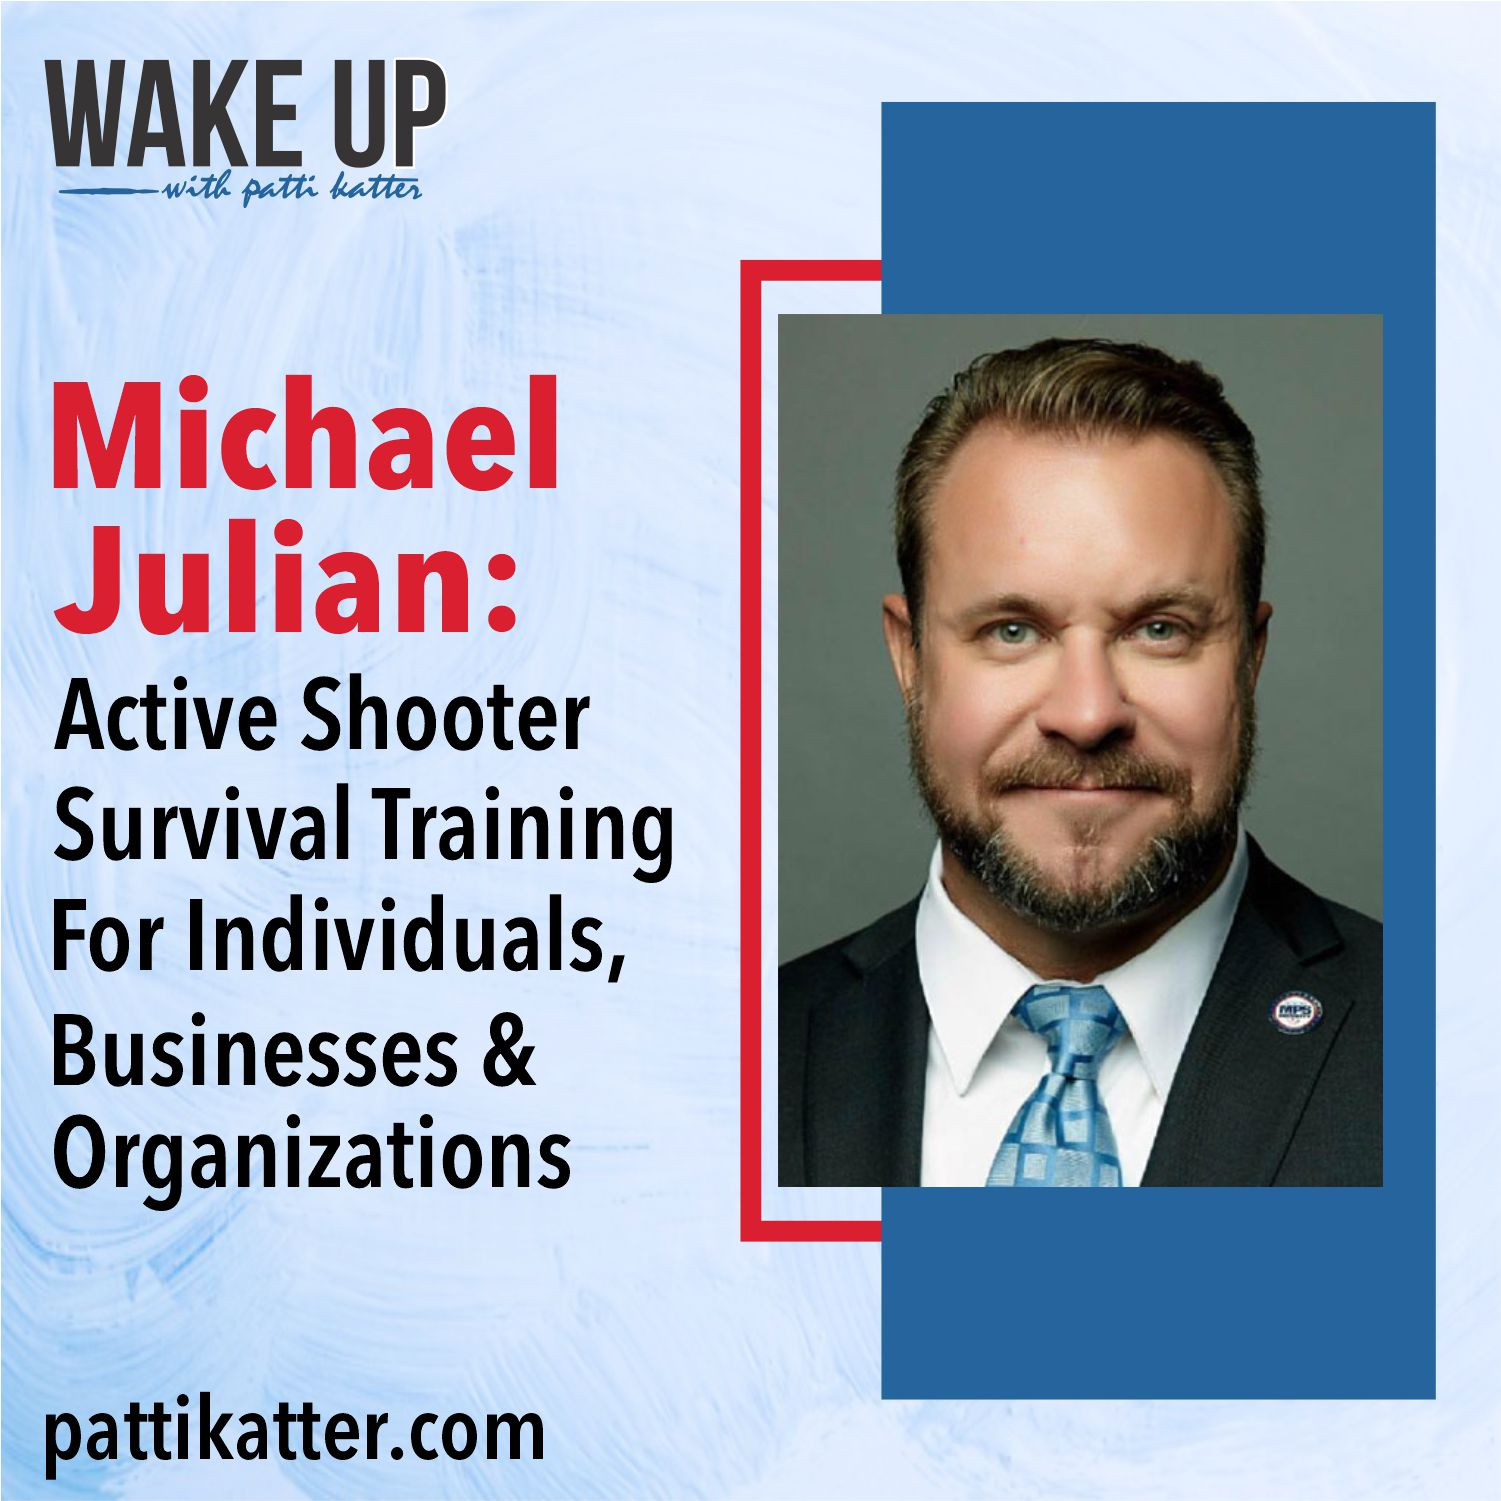 Michael Julian: Active Shooter Survival Training For Individuals, Businesses & Organizations